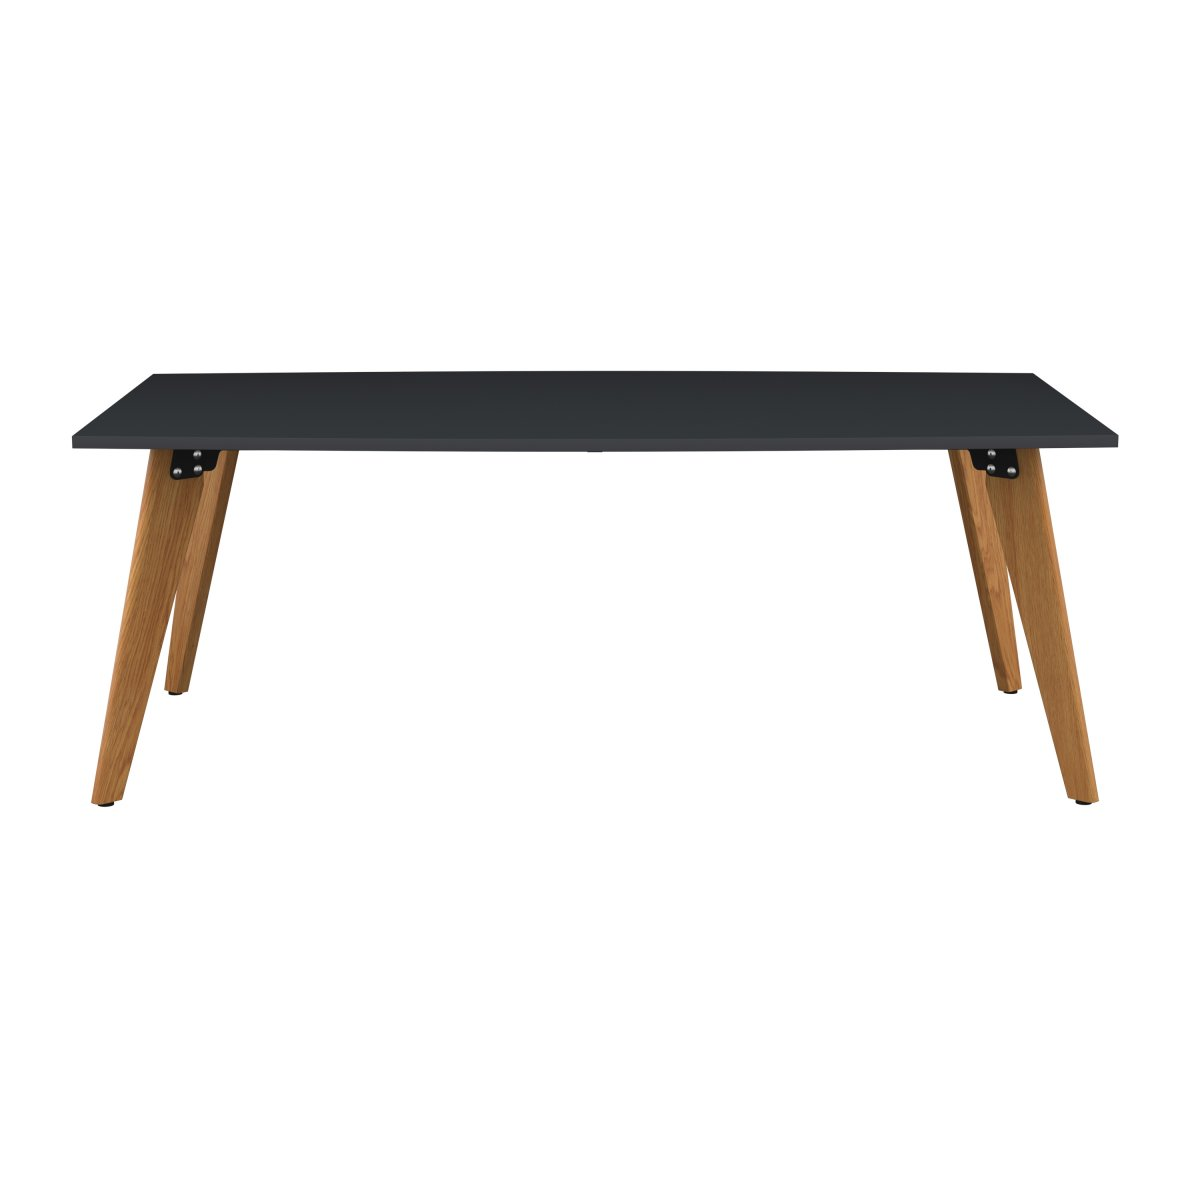 Plateau Barrel Table Anthracite 2000 X 1000 X 740H